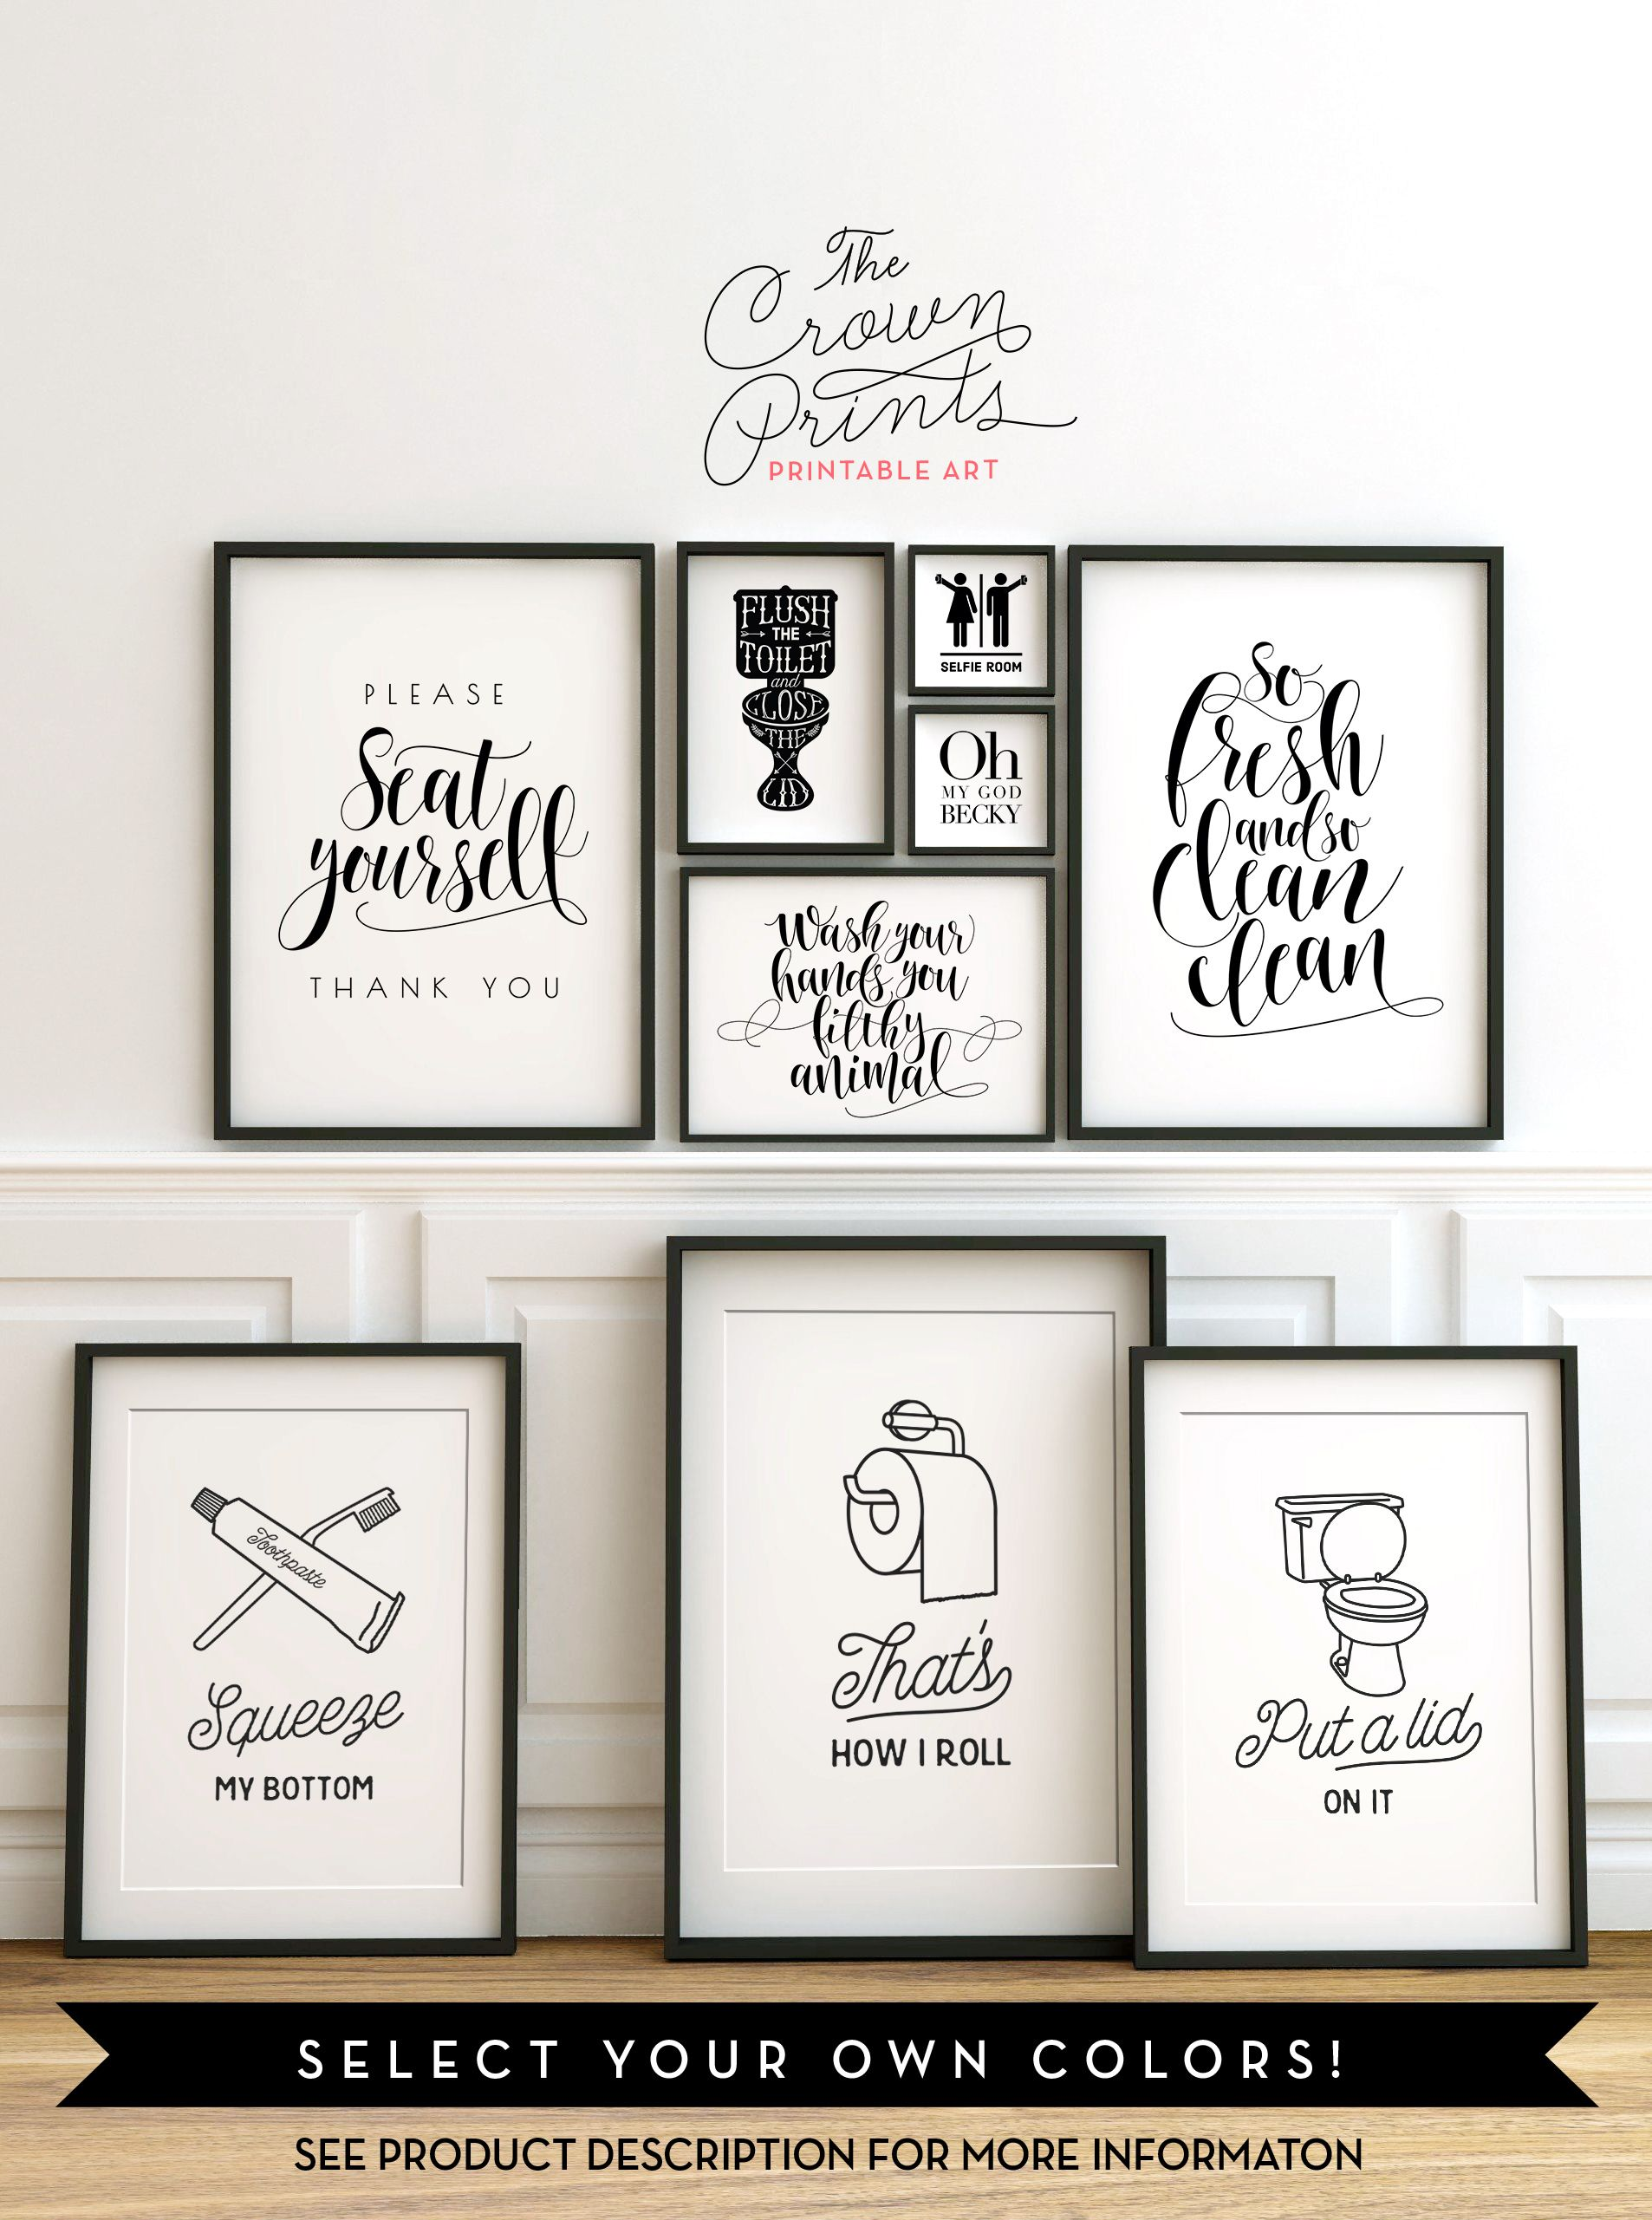 Printable bathroom wall art from the crown prints on etsy lots printable bathroom wall art from the crown prints on etsy lots of funny quotes and jeuxipadfo Image collections